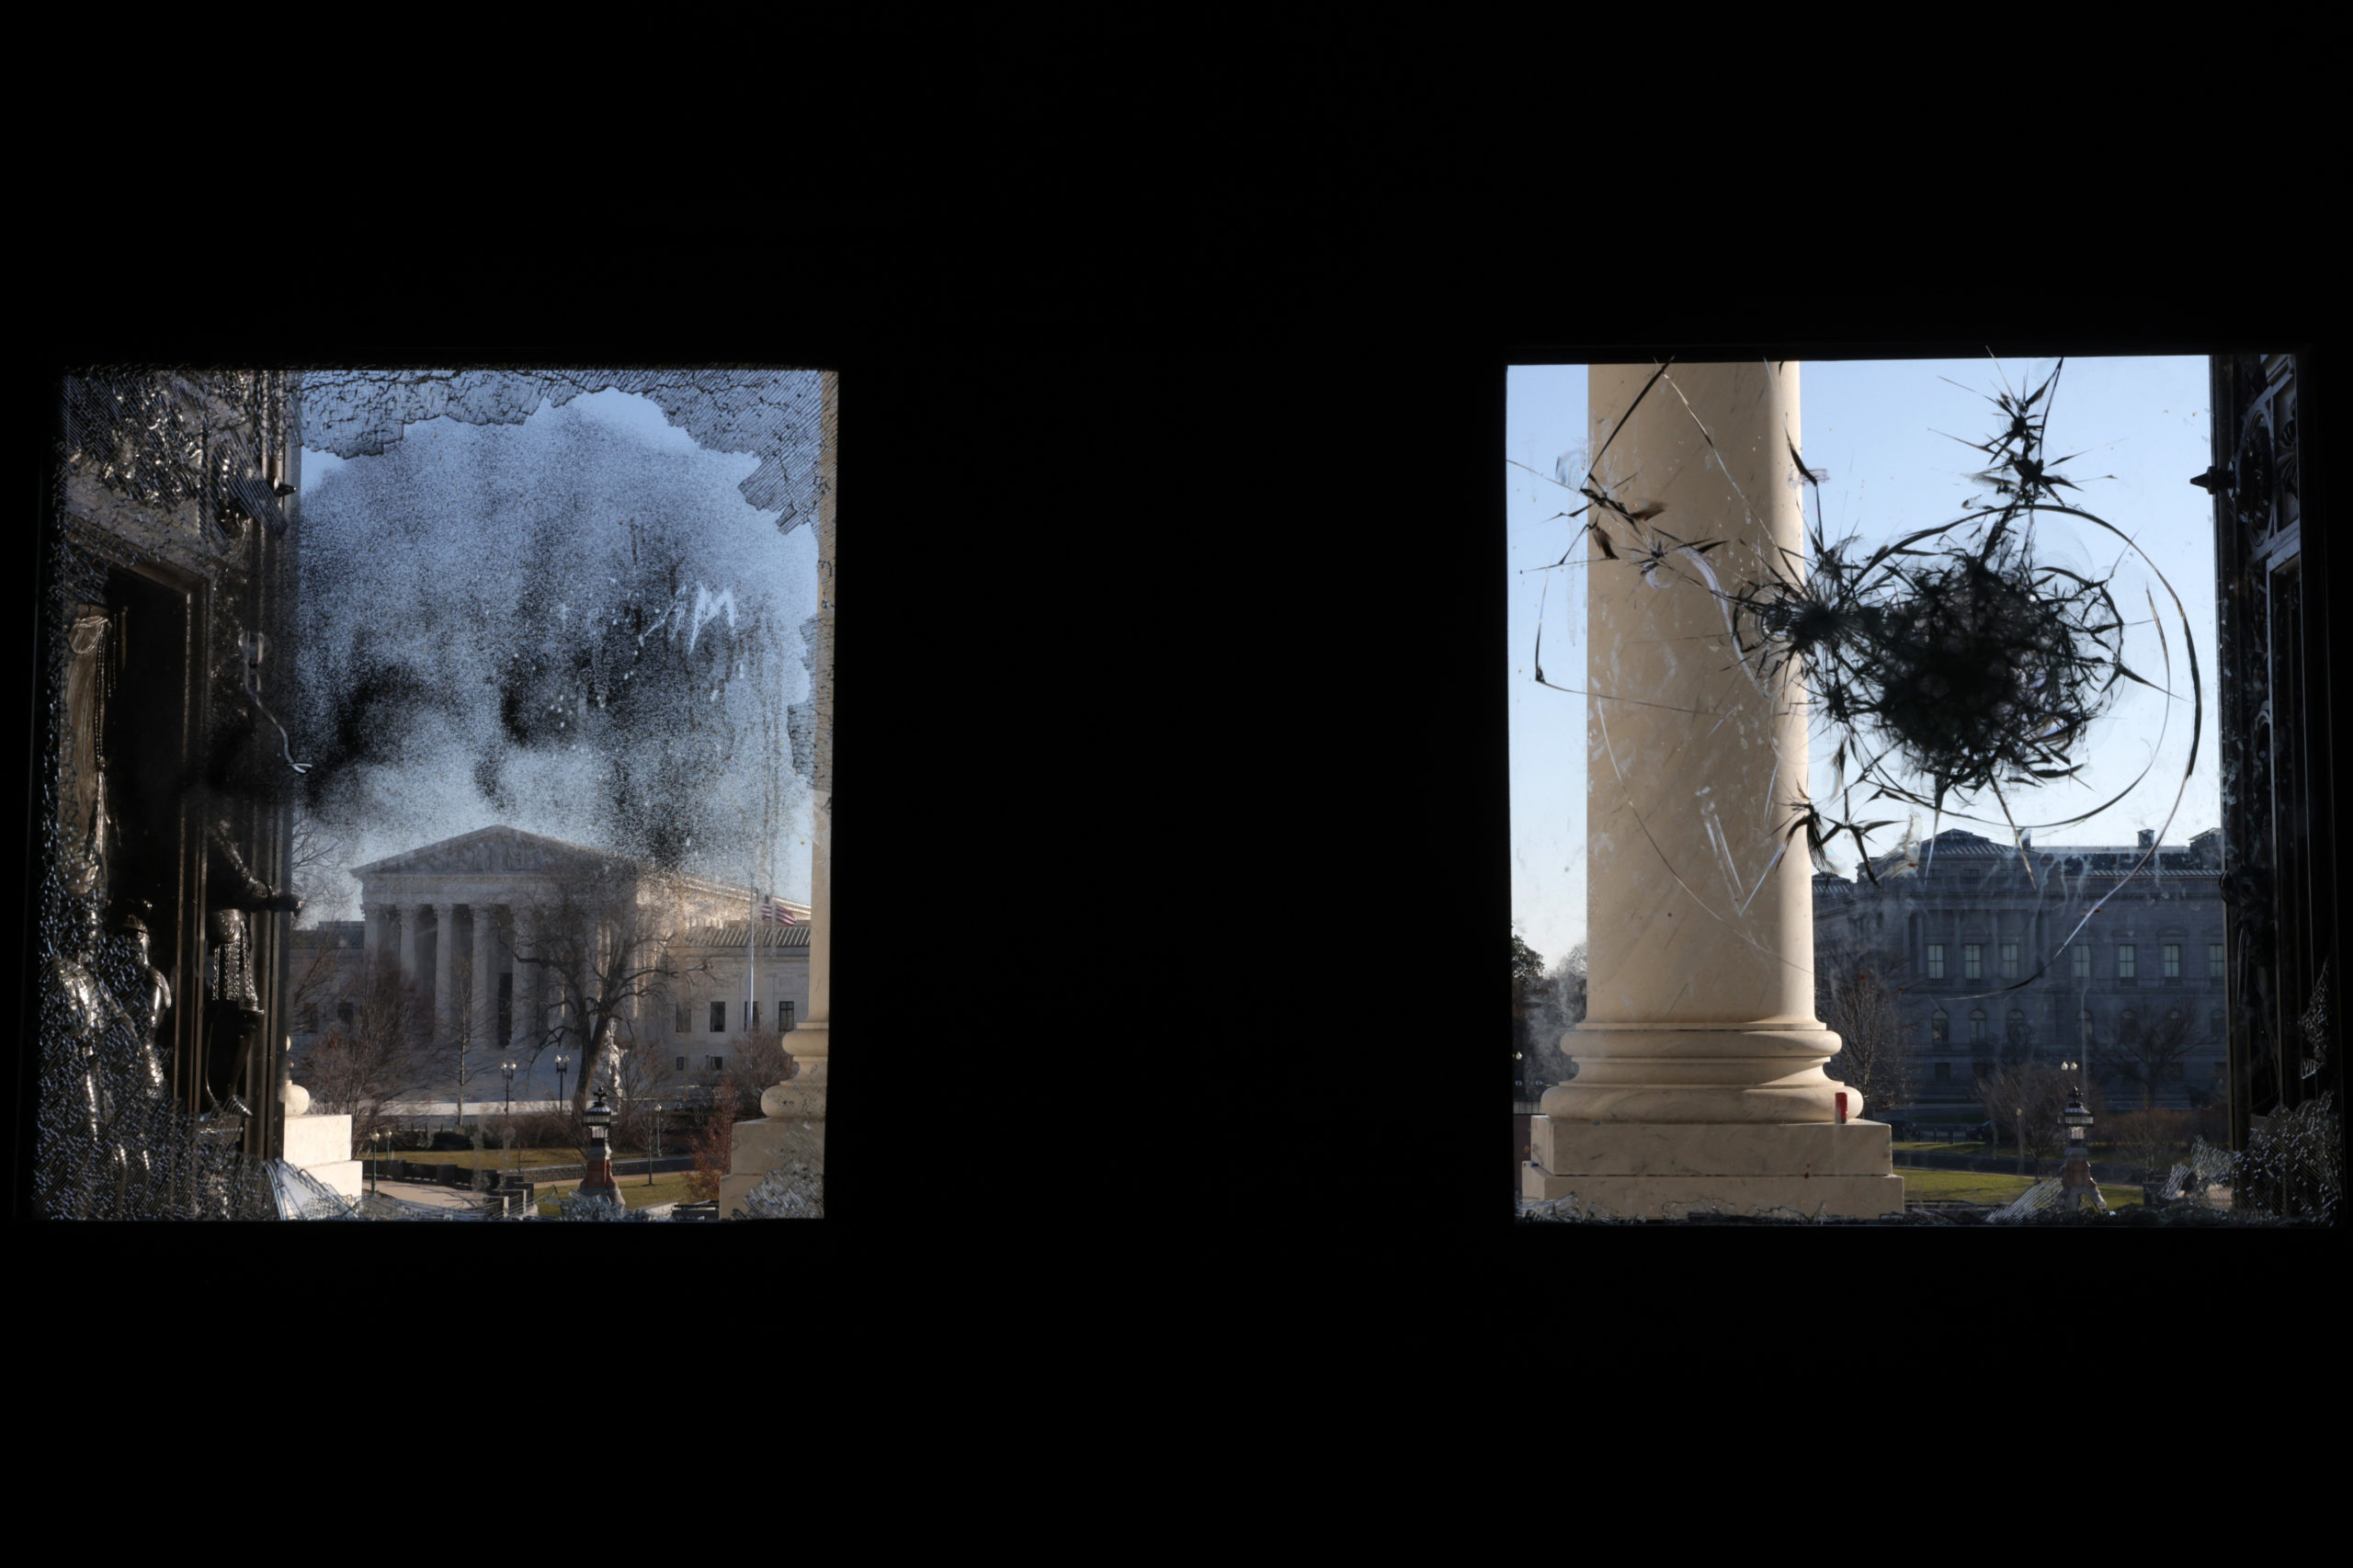 WASHINGTON, DC - JANUARY 07: The U.S. Supreme Court is seen through a damaged entrance of the U.S. Capitol January 7, 2021 in Washington, DC. The U.S. Congress has finished the certification for President-elect Joe Biden and Vice President-elect Kamala Harris' electoral college win after pro-Trump mobs stormed the Capitol and temporarily stopped the process. (Photo by Alex Wong/Getty Images)